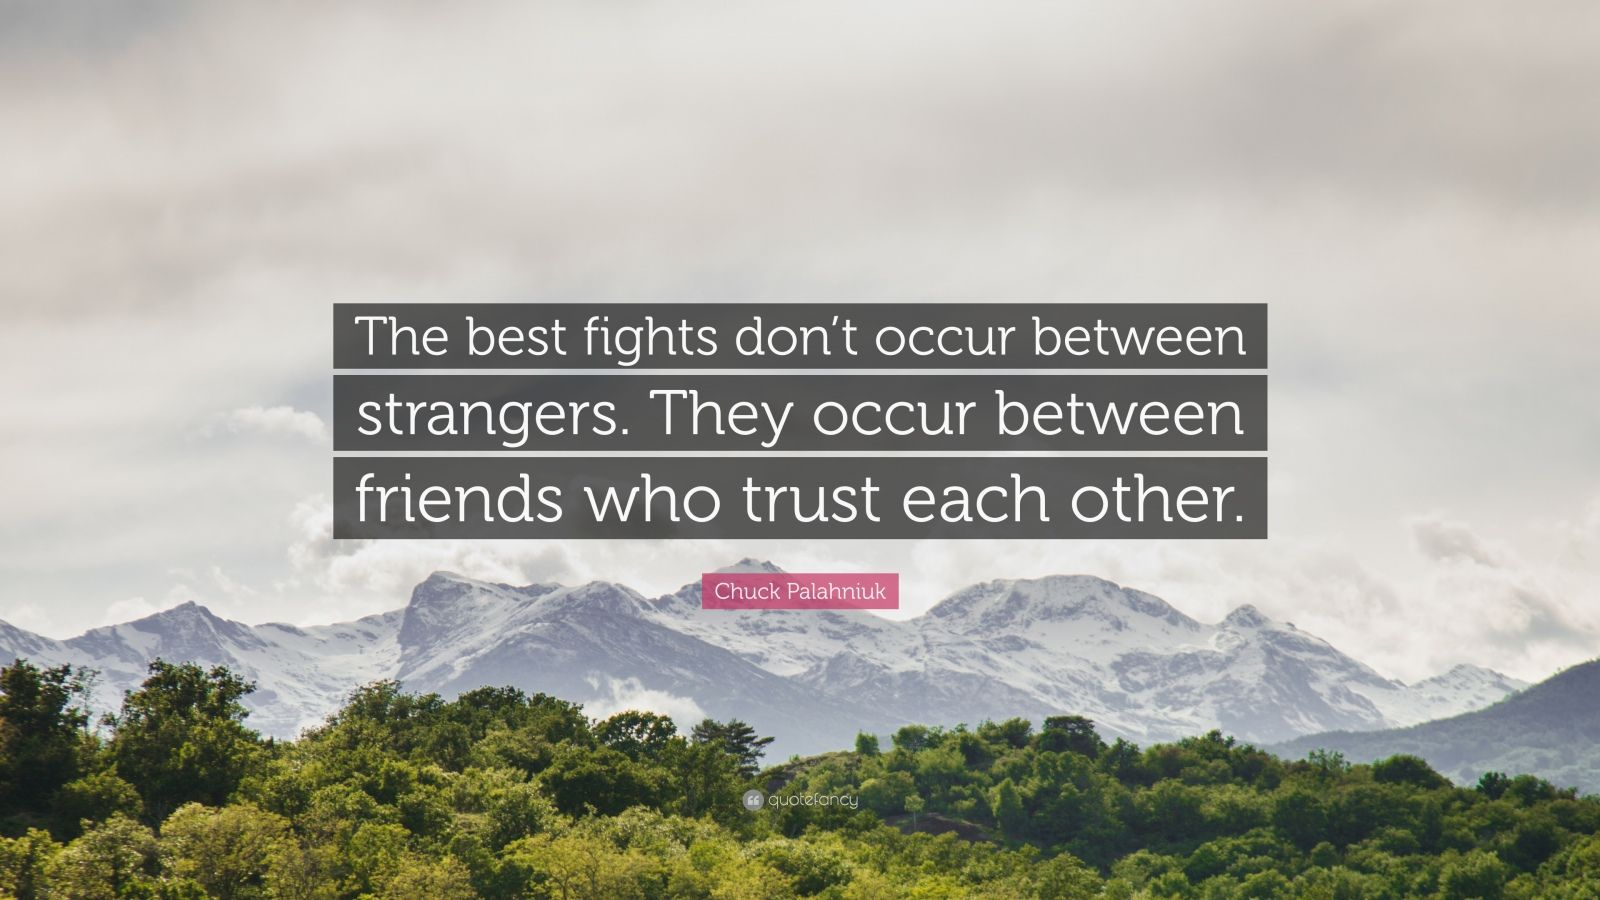 """Chuck Palahniuk Quote: """"The best fights don't occur between strangers. They occur between friends who trust each other."""""""